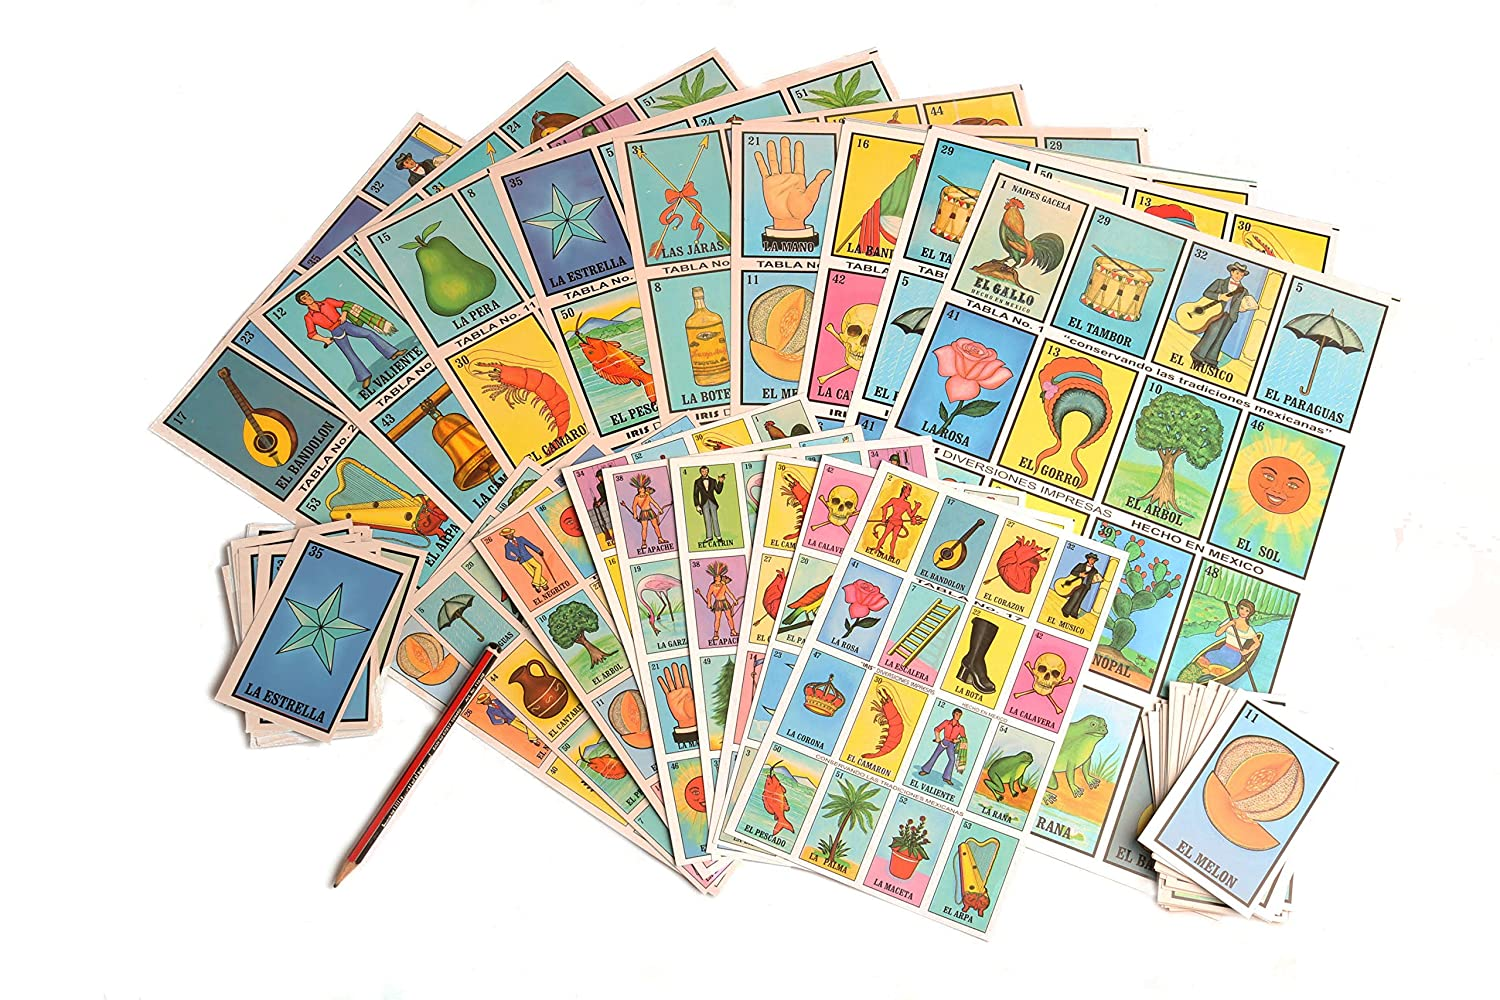 Amazon.com: Naipes Gacela 2 Loteria Mexicana Sets (Different Sizes), 1 Jumbo Set (20 Boards, Cards and 80 Markers) & 1 Portable Set (20 Boards and Cards).